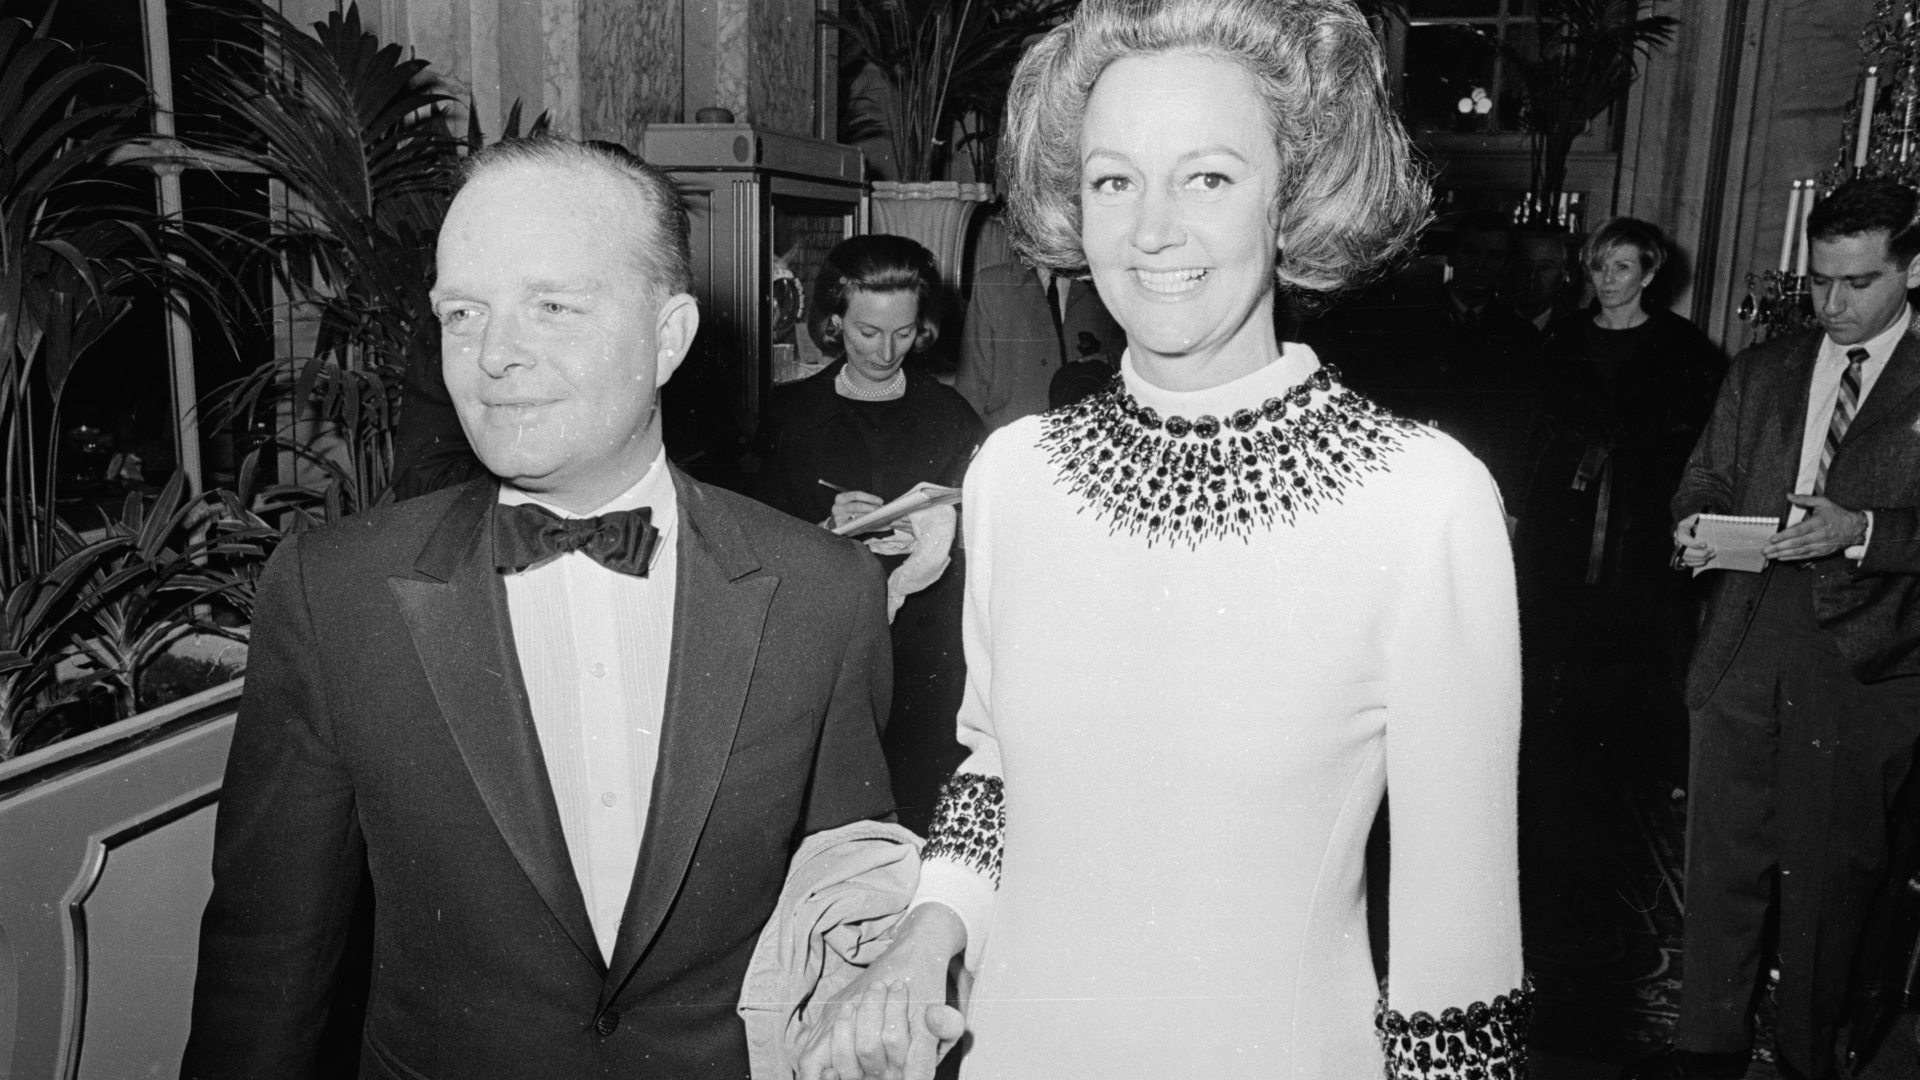 Truman Capote with Katherine Graham, publisher of the Washington Post and the guest of honor at Capote's Black and White Ball.  (Credit: Harry Benson/Express/Getty Images)